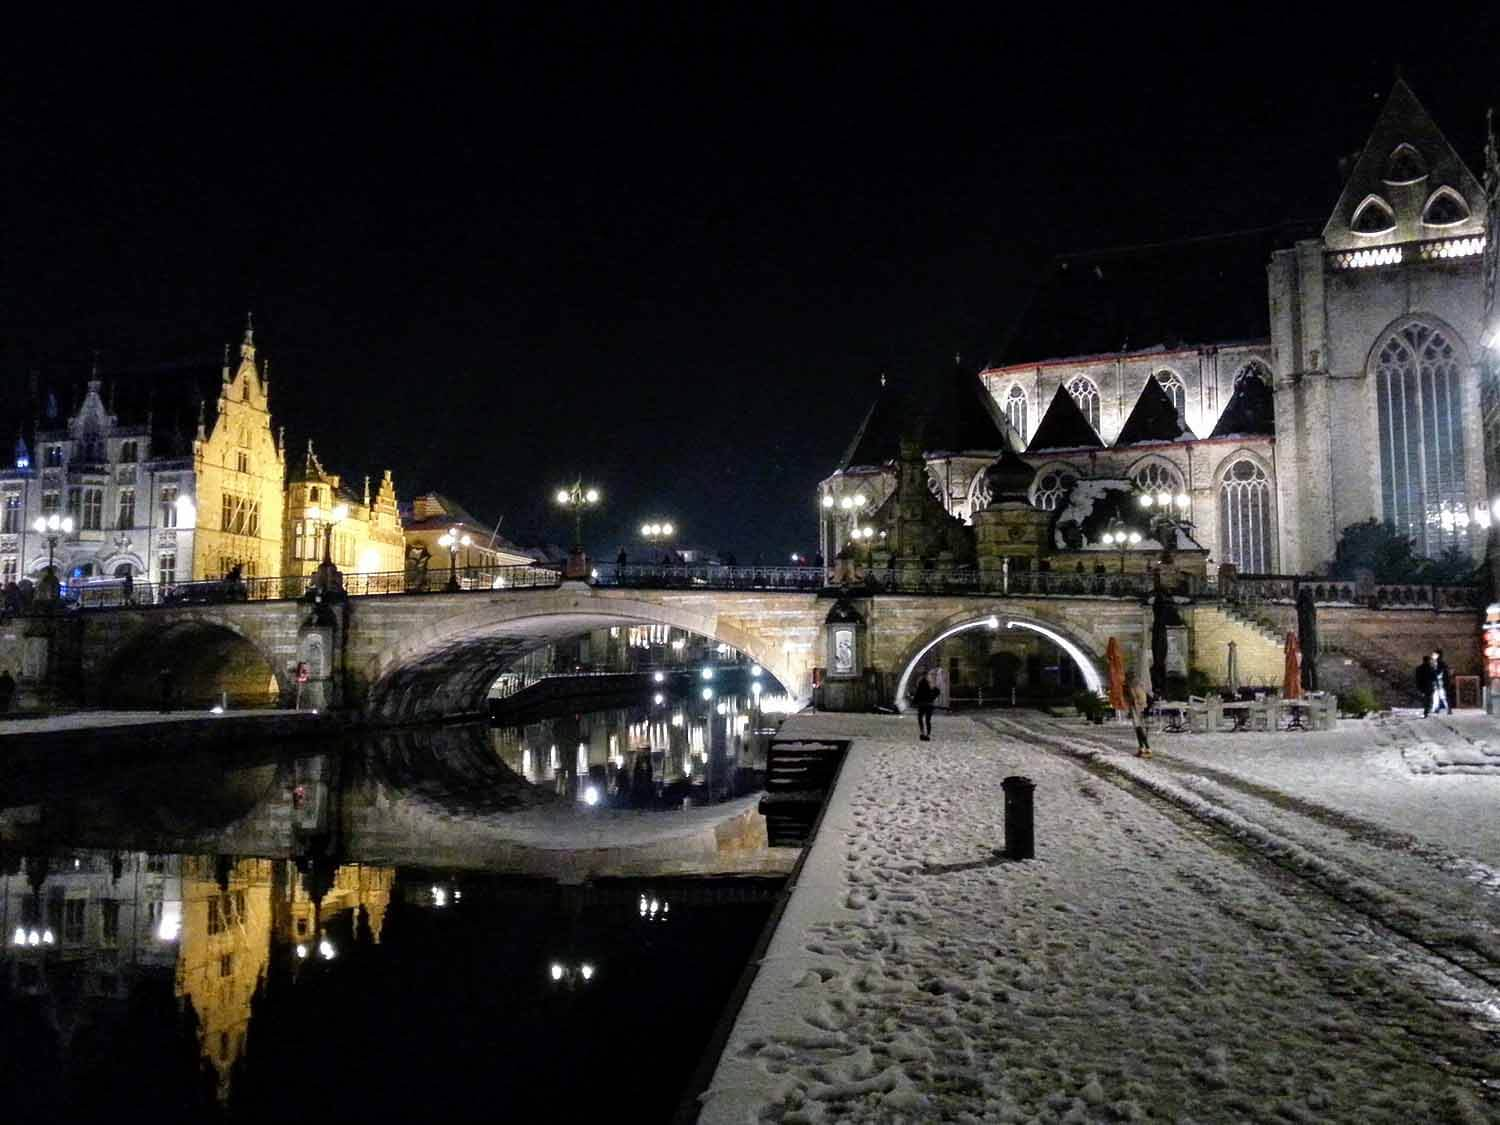 belgium-ghent-nightime-river-bridge.jpg